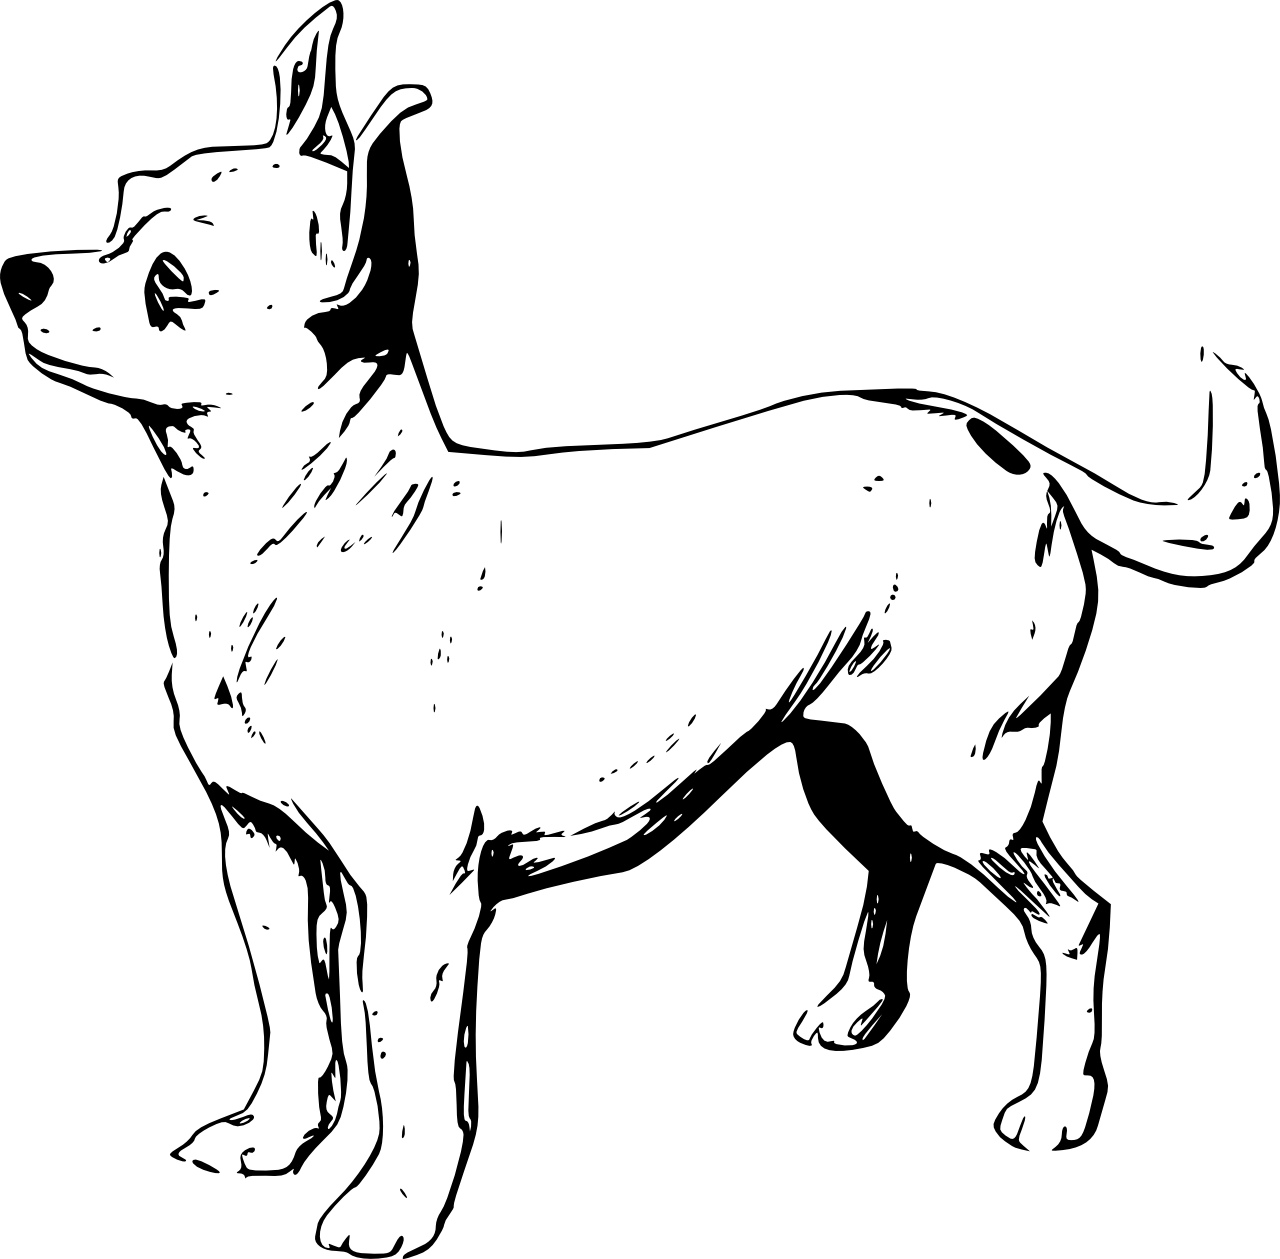 Chihuahua clip art bernice. 4d drawing dog jpg library download